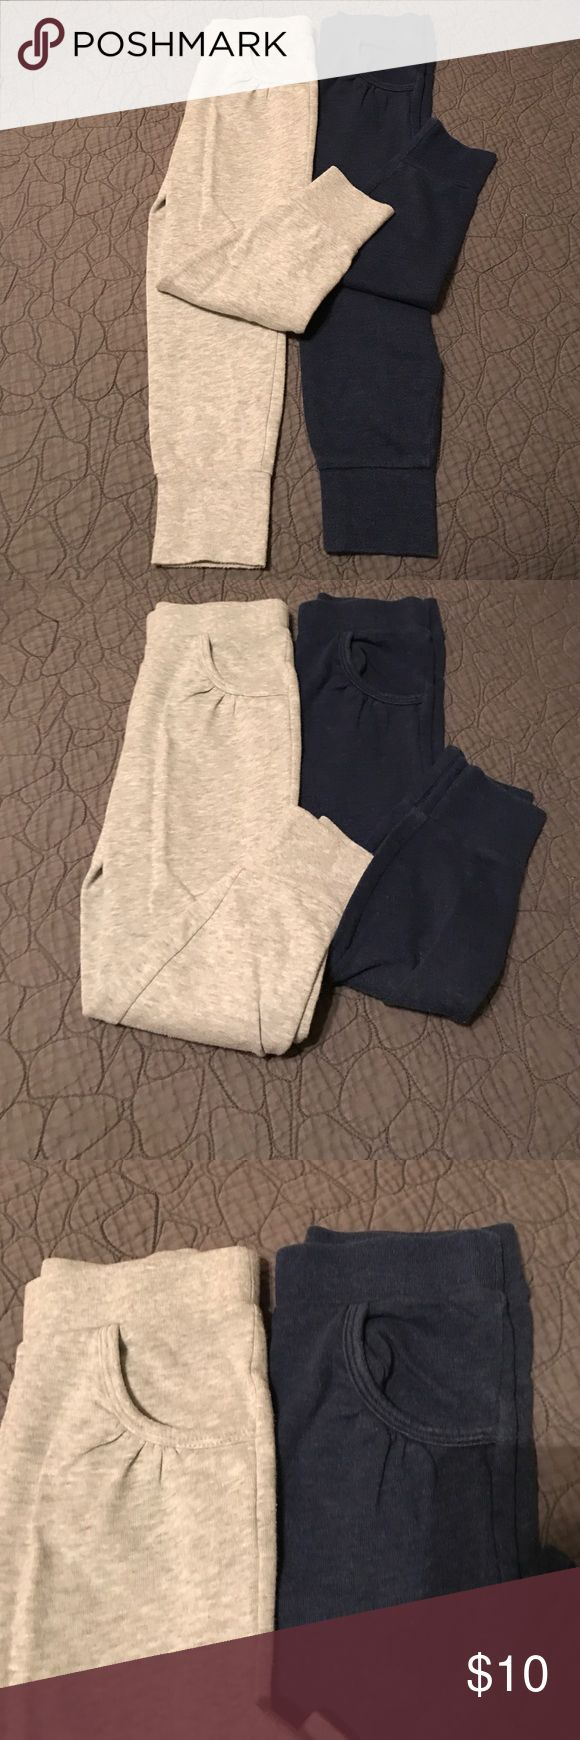 Toddler girls drawstring jogger sweatpants Toddler girls drawstring jogger sweatpants size 5T from Old Navy tapped at ankle   Sold as a lot one gray one Navy. Old Navy Bottoms Sweatpants & Joggers